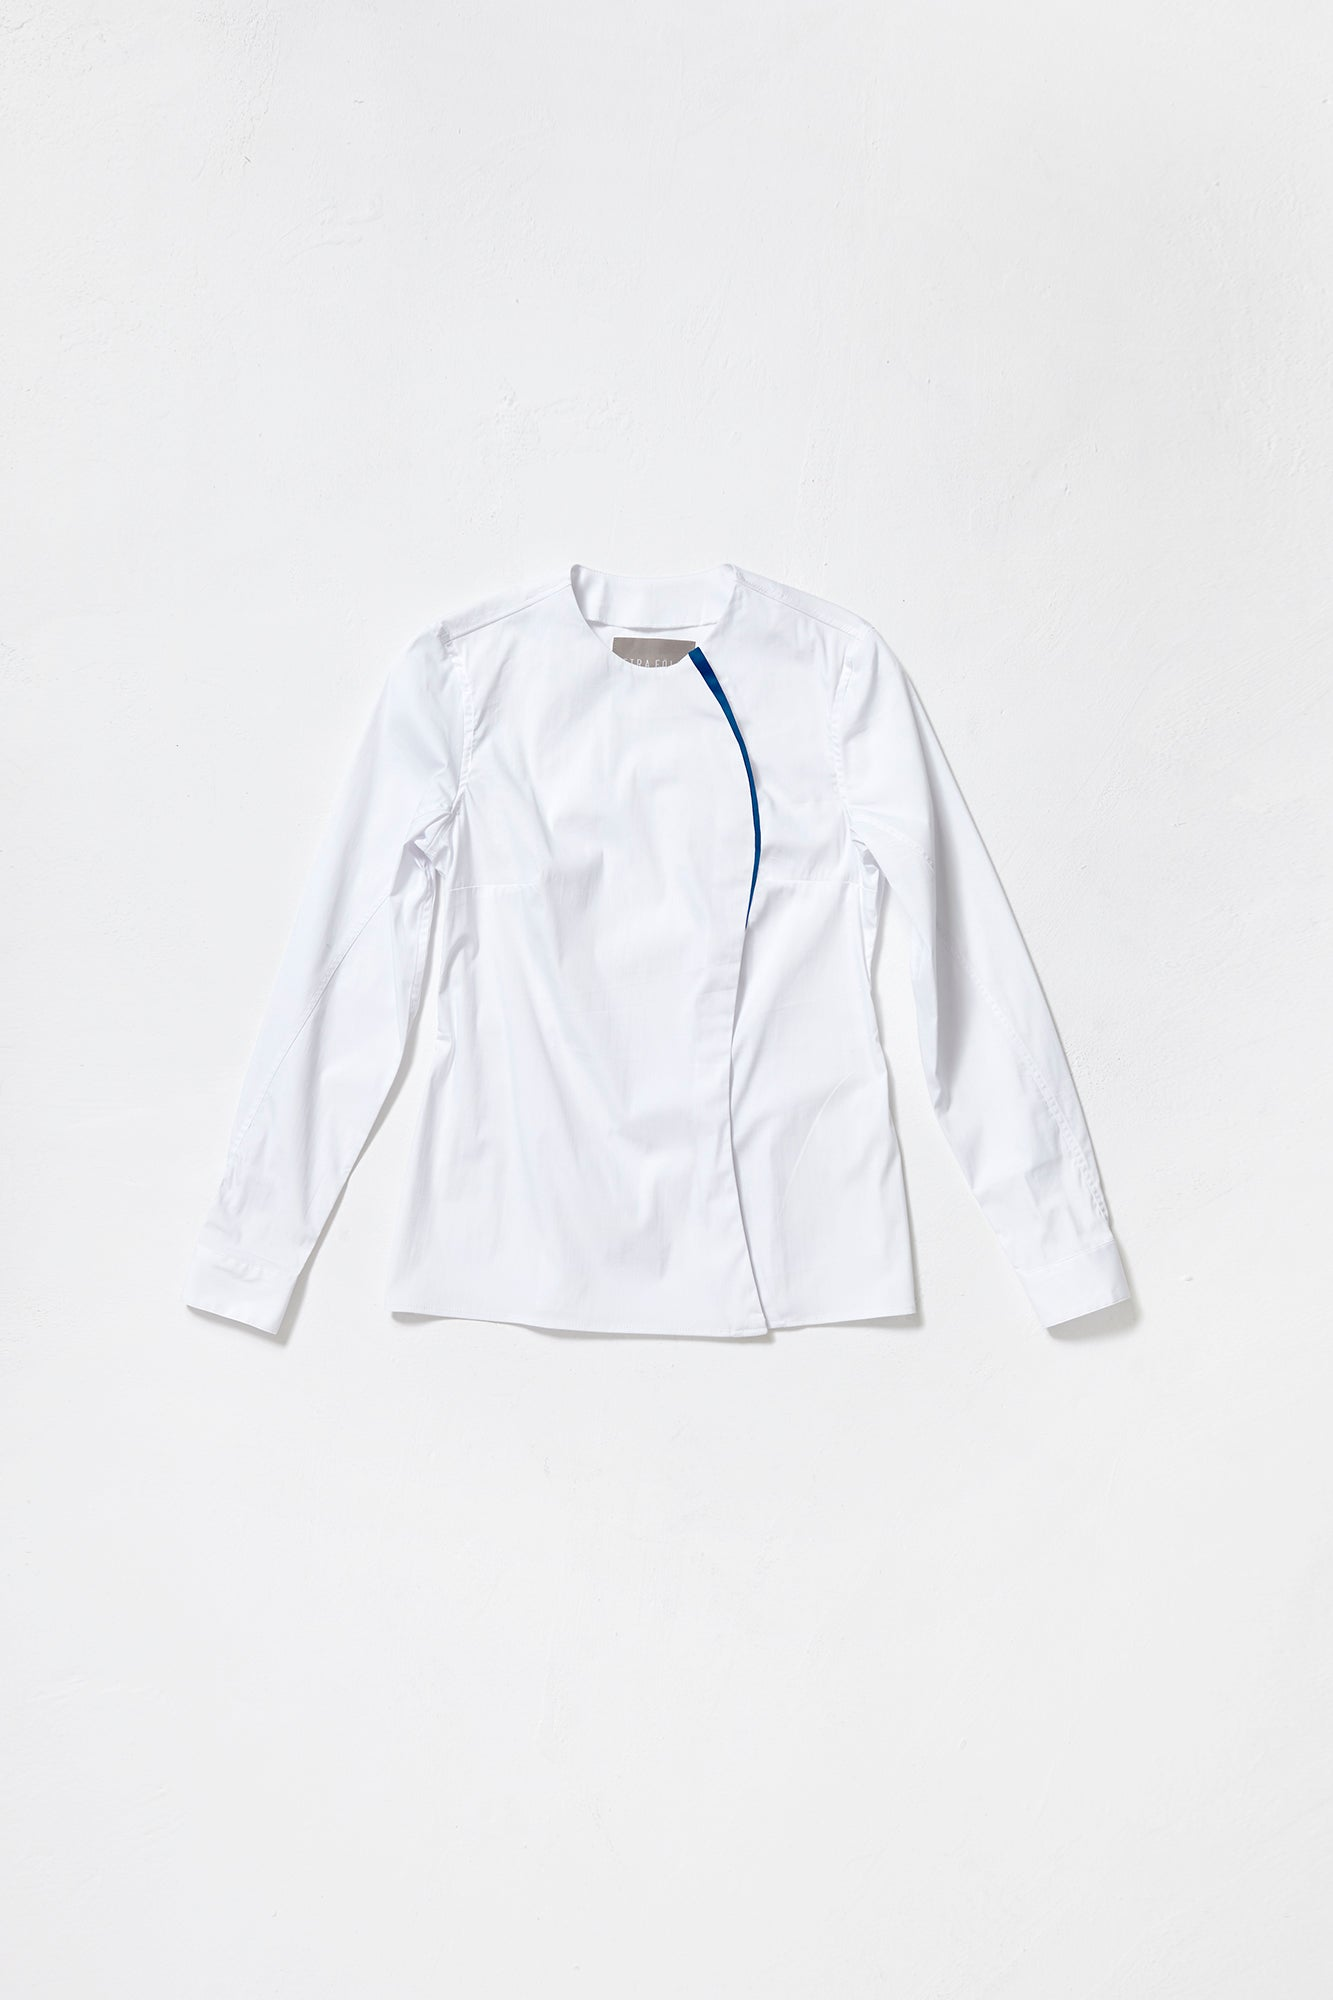 WHITE COLLARLESS ONE-SIDED SHIRT with blue decor line for women